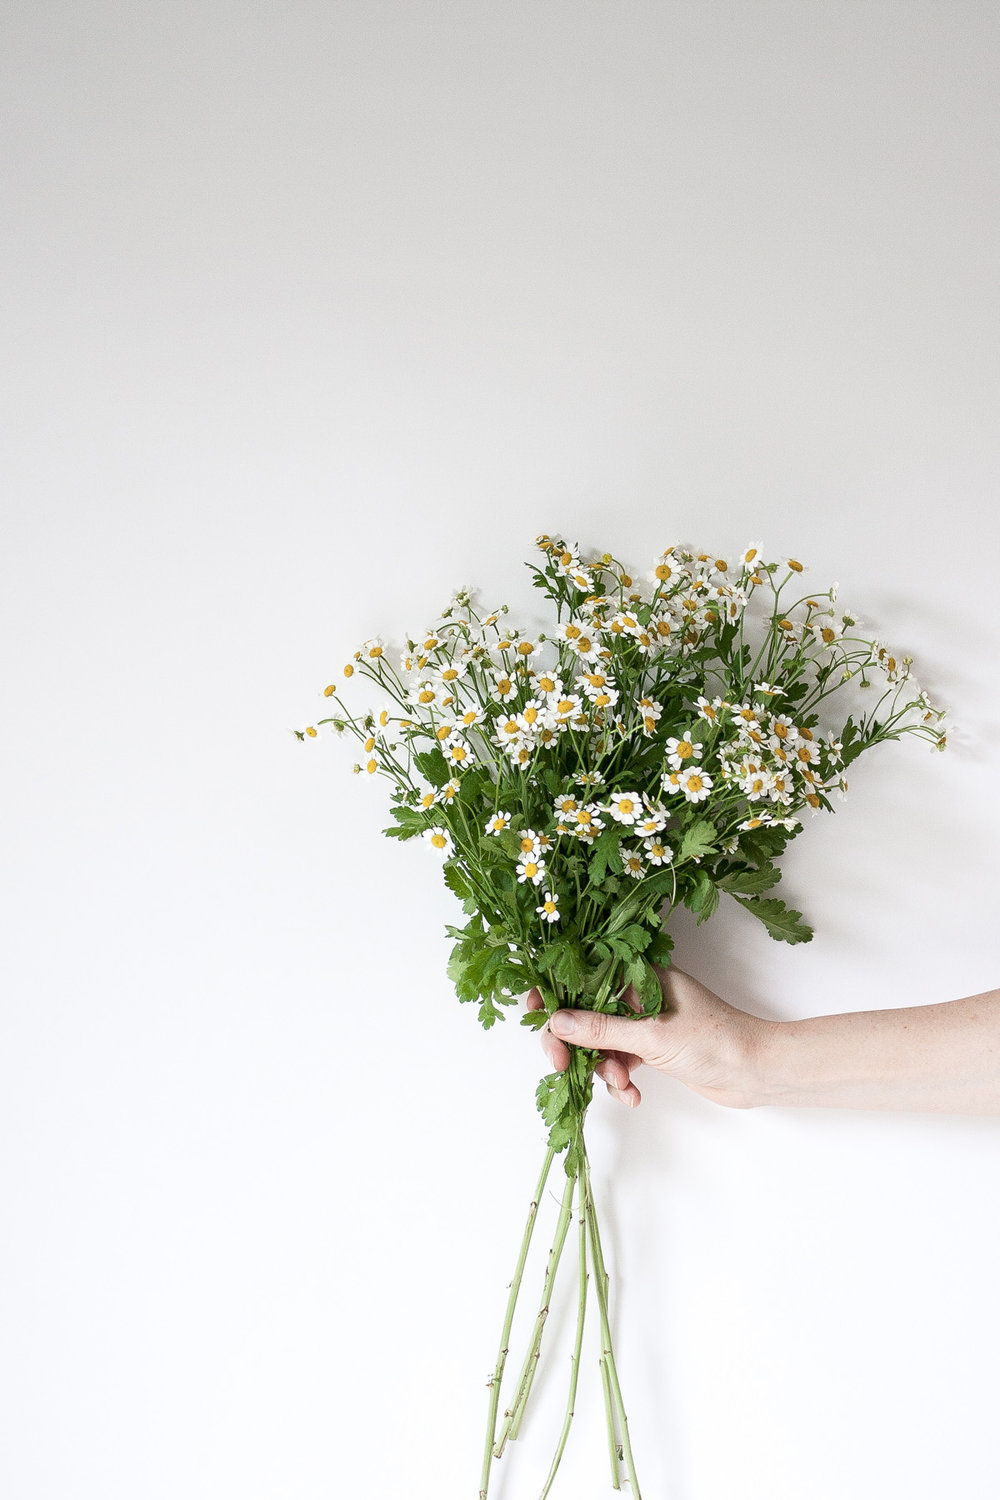 "Chamomile Ode to Lifestyle Change: Busy perfectionist ""woman bosses"" may need to slow down, self-care, self-work, and journal to find true acceptance, contentment and peace."